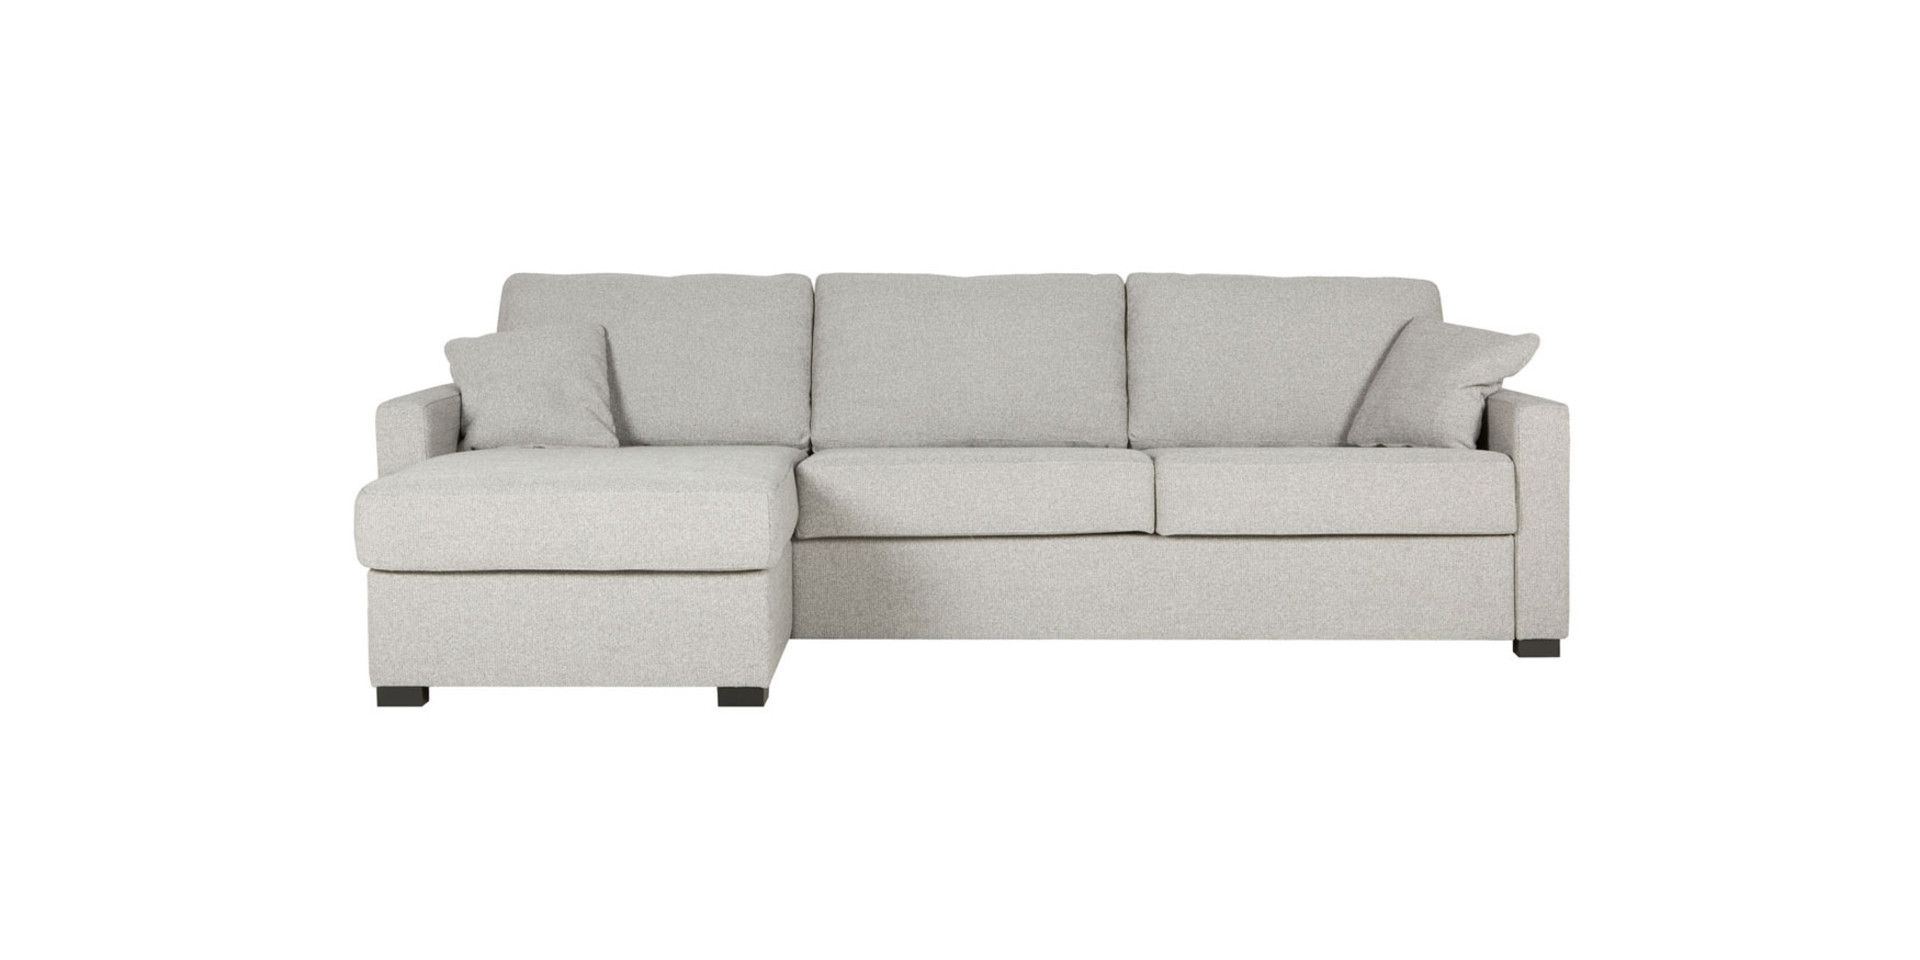 sits-lukas-angle-convertible-set2_origin51_light_grey_4